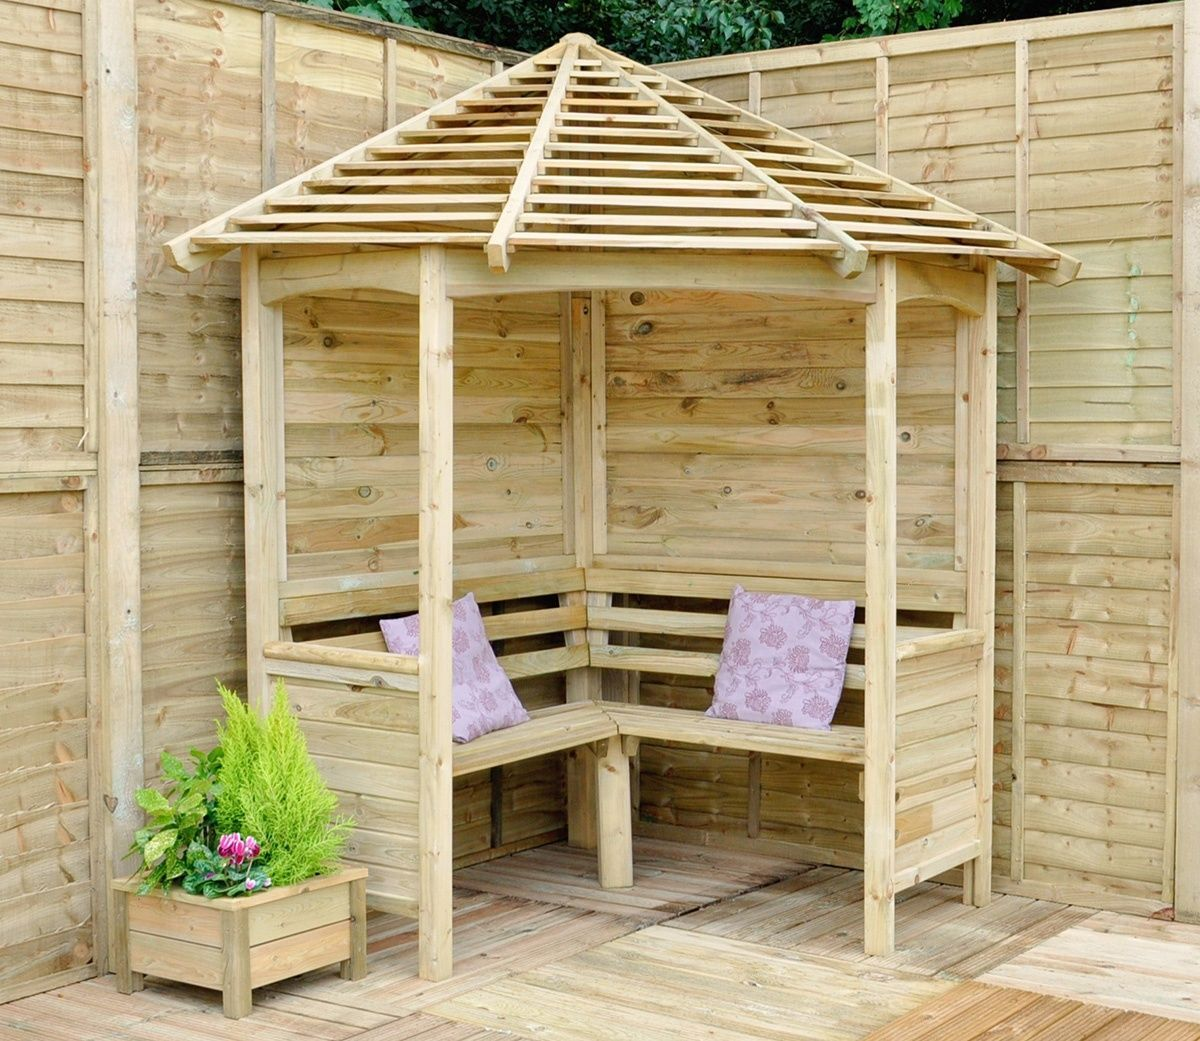 7 Affordable Landscaping Ideas For Under 1 000: 45 Garden Arbor Bench Design Ideas & DIY Kits You Can